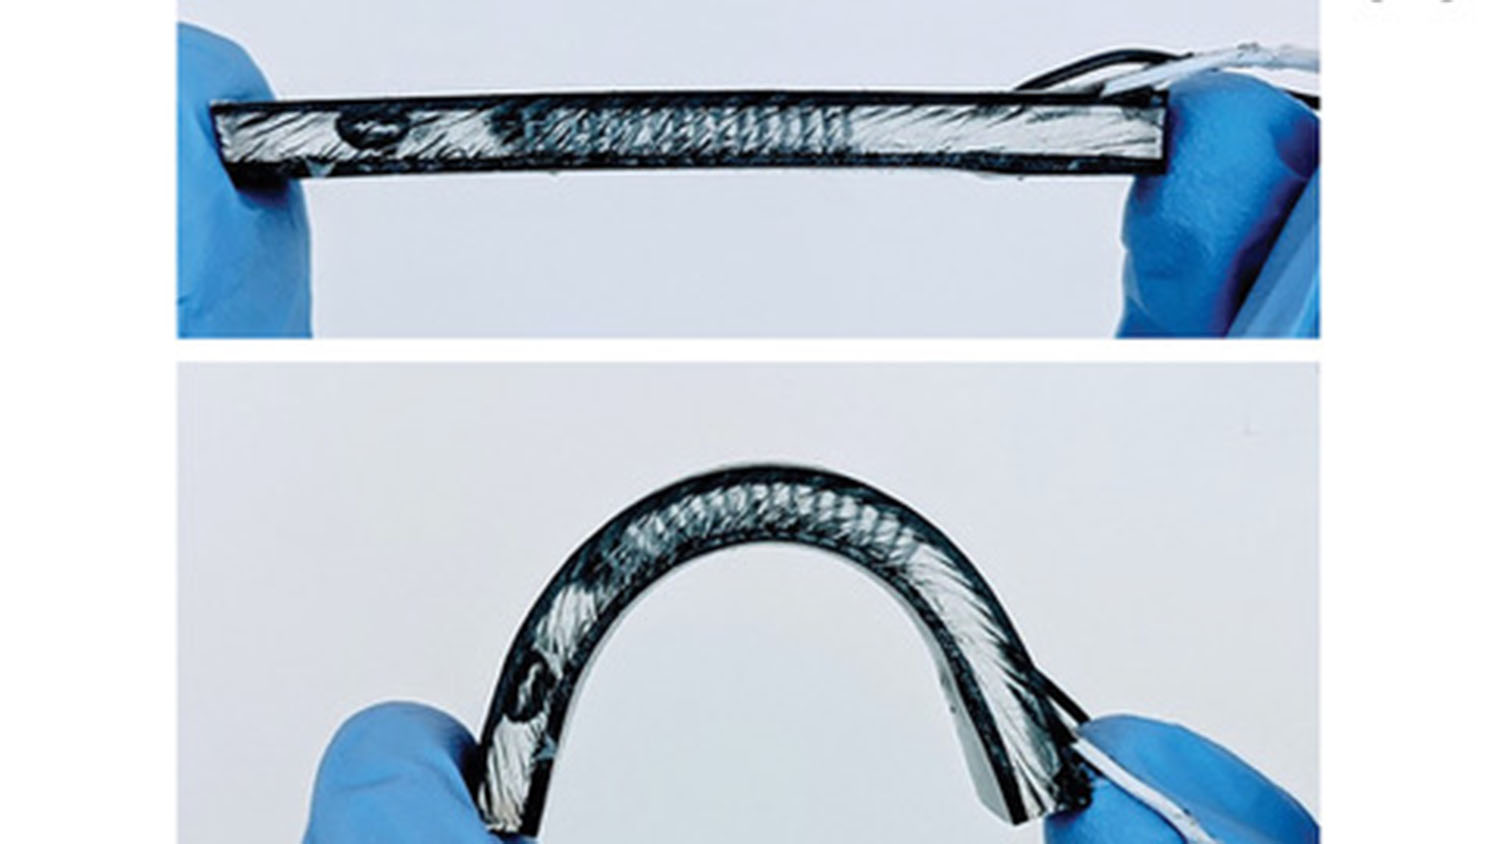 Image of flexible device.